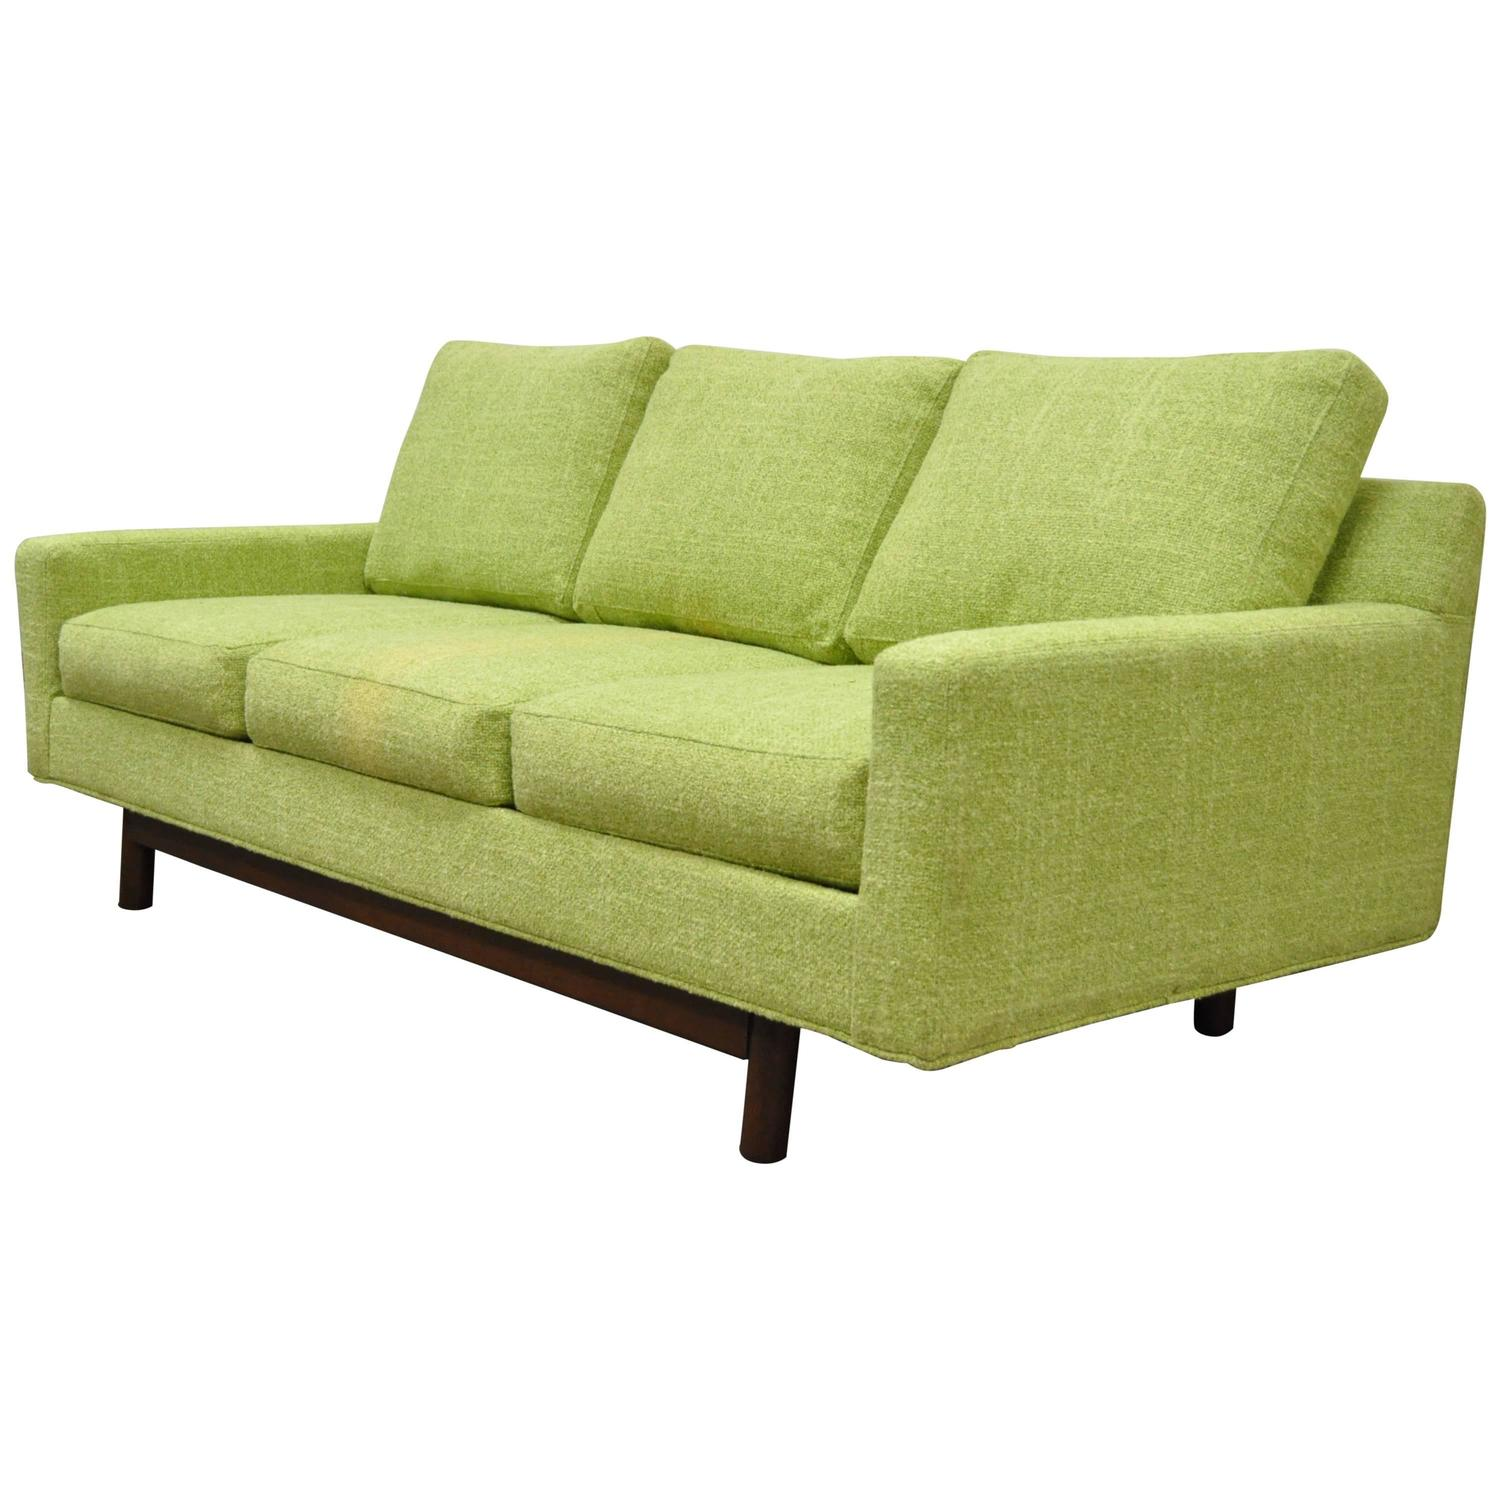 1960 s Mid Century Modern Sofa in Manner of Edward Wormley for